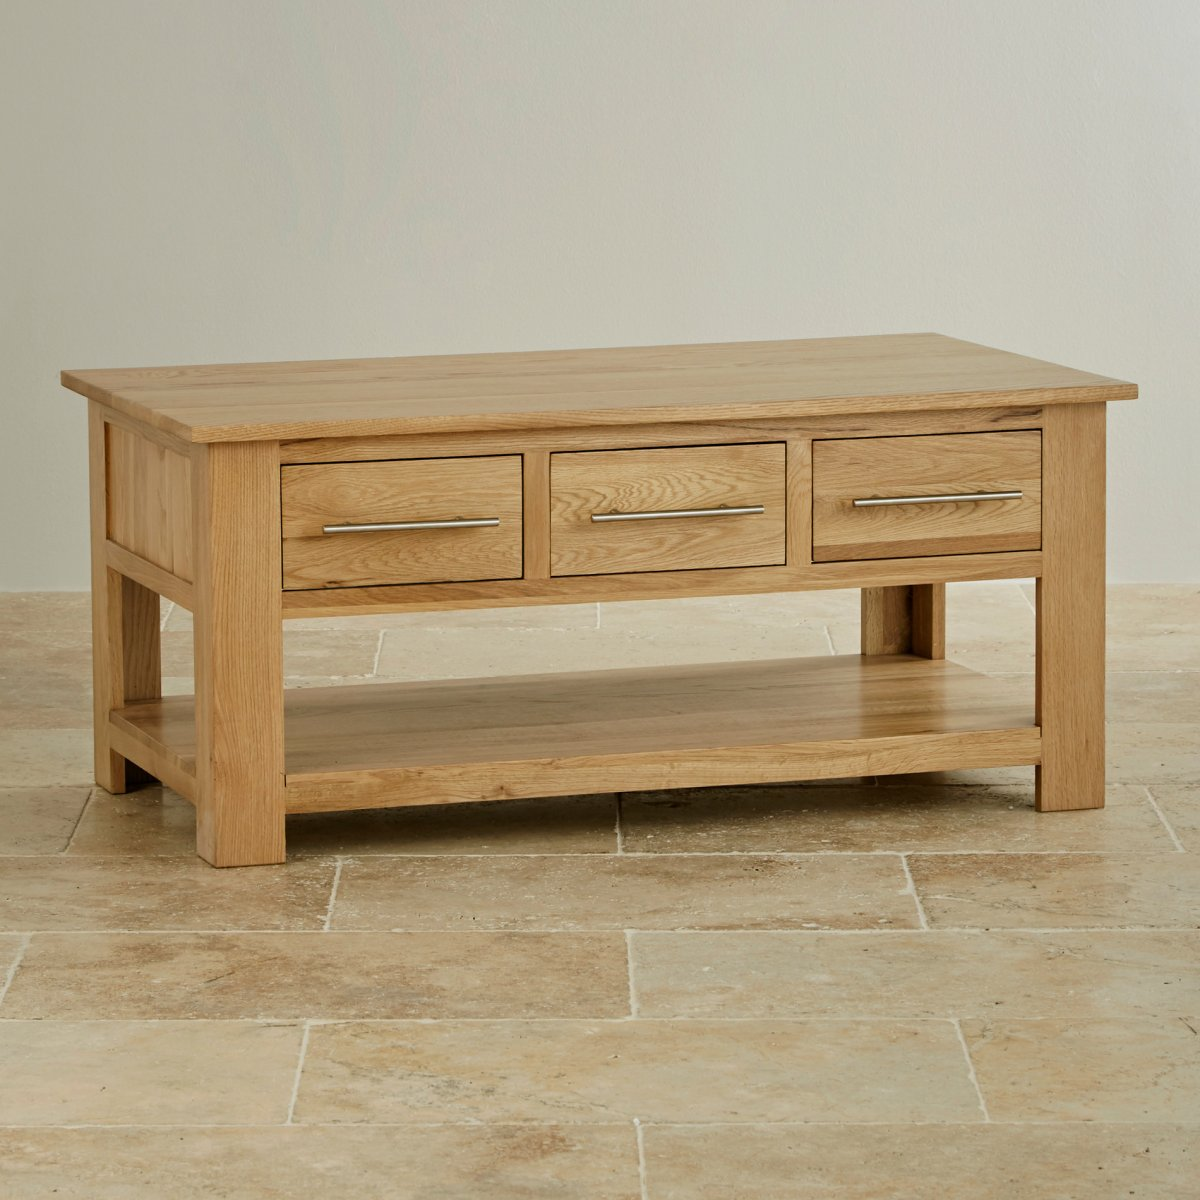 Popular 225 List Coffee Table With Drawers